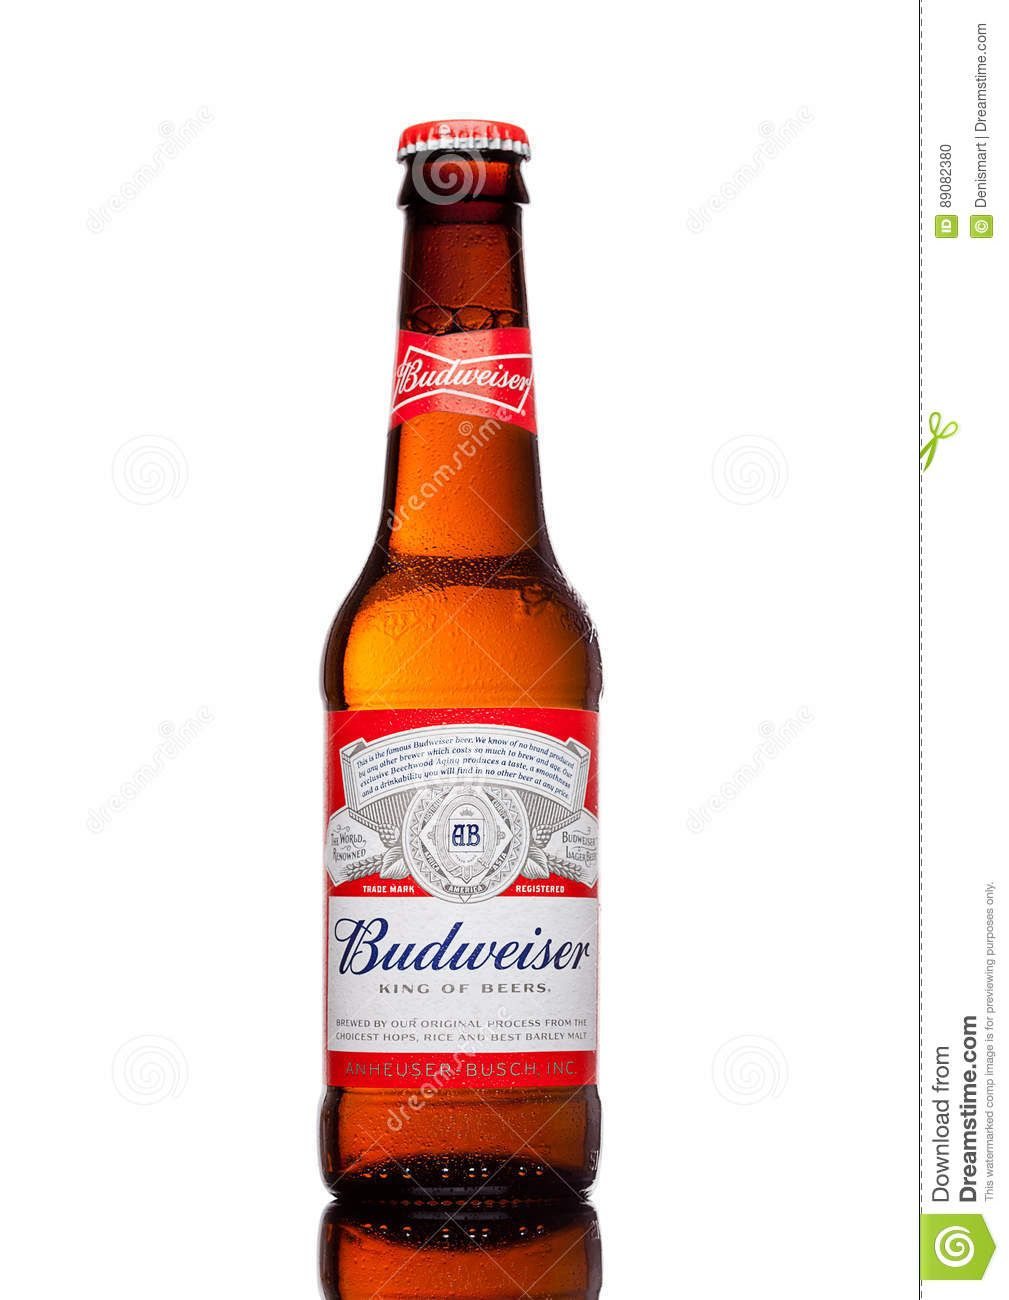 Budweiser clipart beer bottle #4 in 2019.